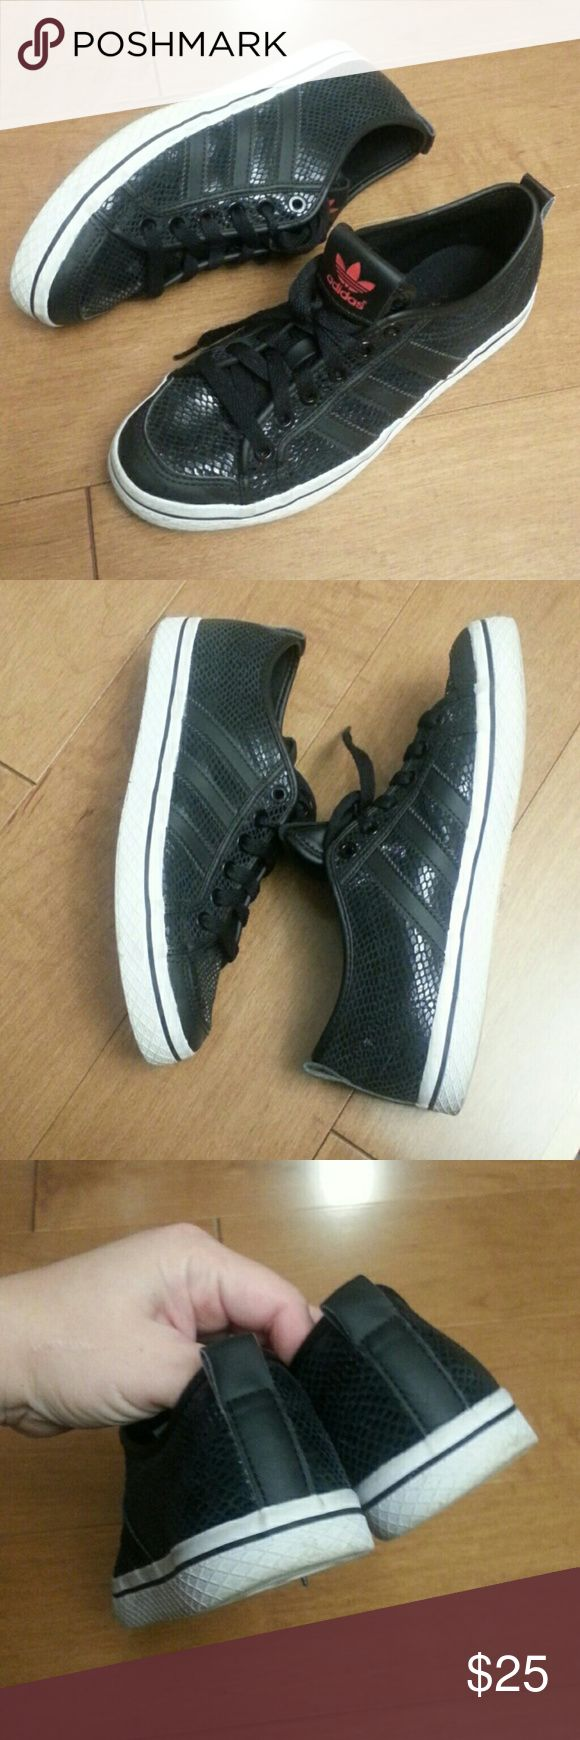 Adidas Women's Athletic Shoes Great condition. Size 6.5. Black and little sparkly. Adidas Shoes Athletic Shoes